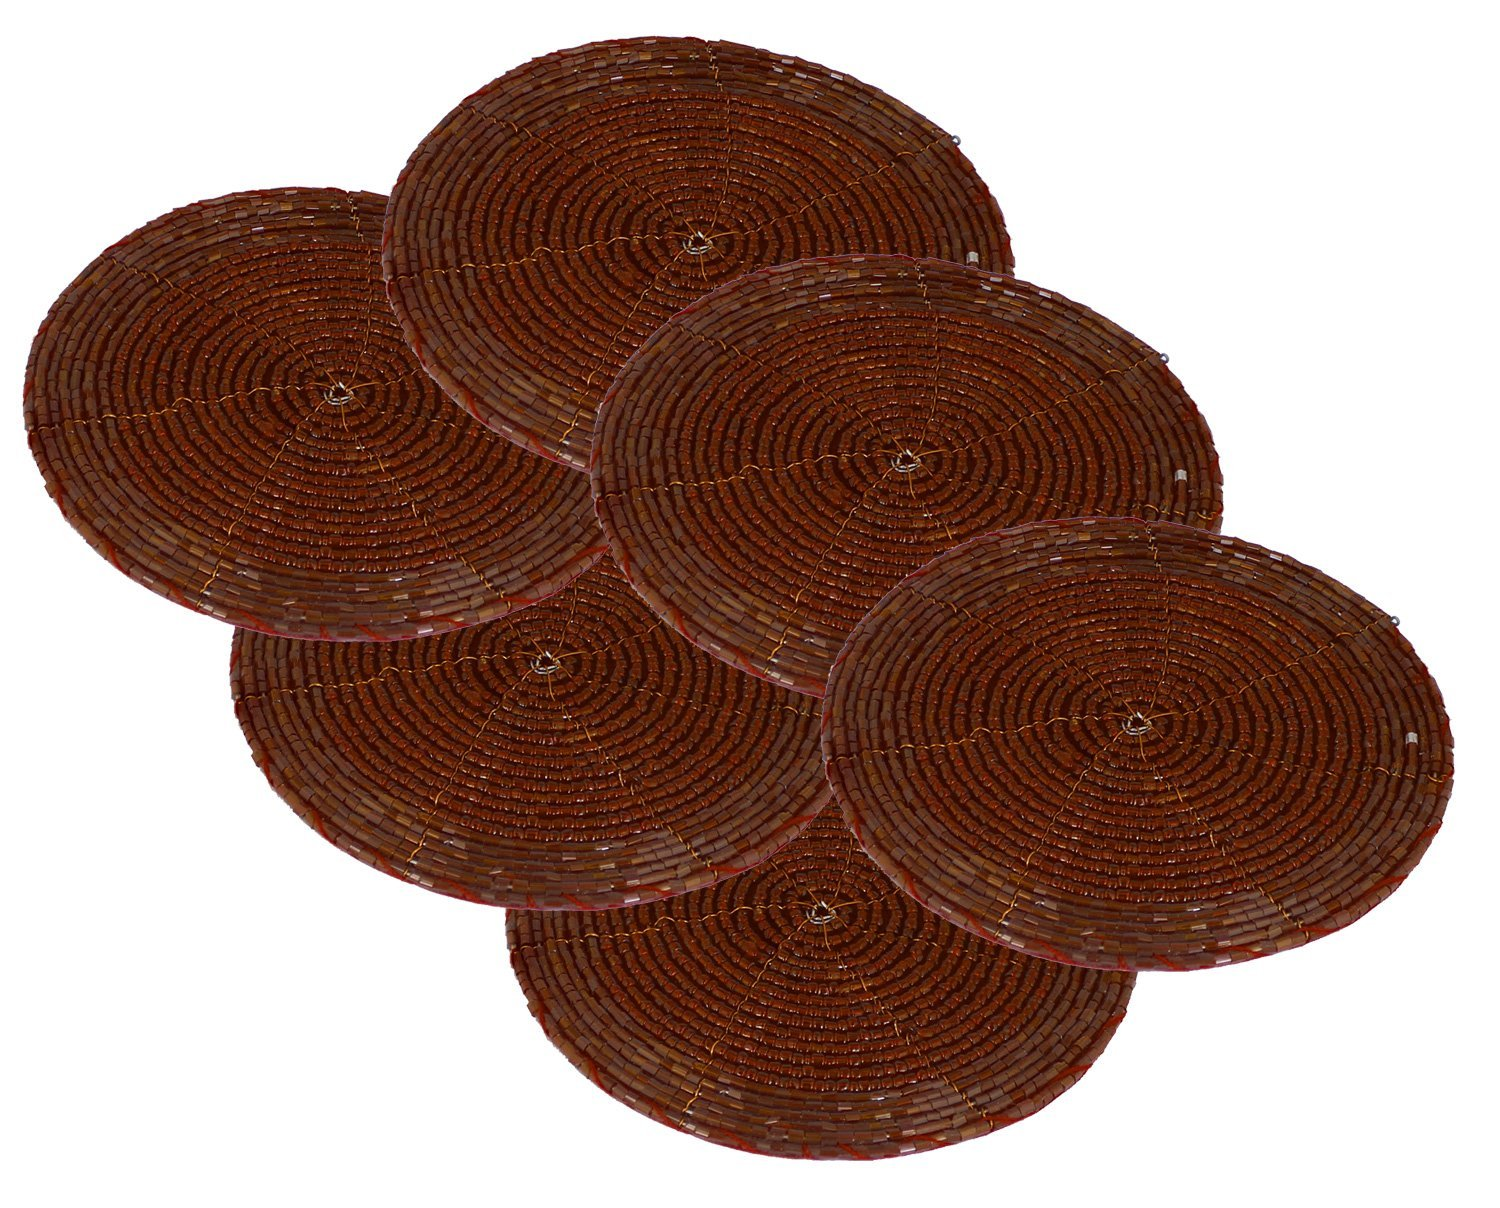 SKAVIJ Table Coasters Set Kitchen Pack of 6 Table Décor Beaded Round Brown Coaster Handmade - 4 Inch